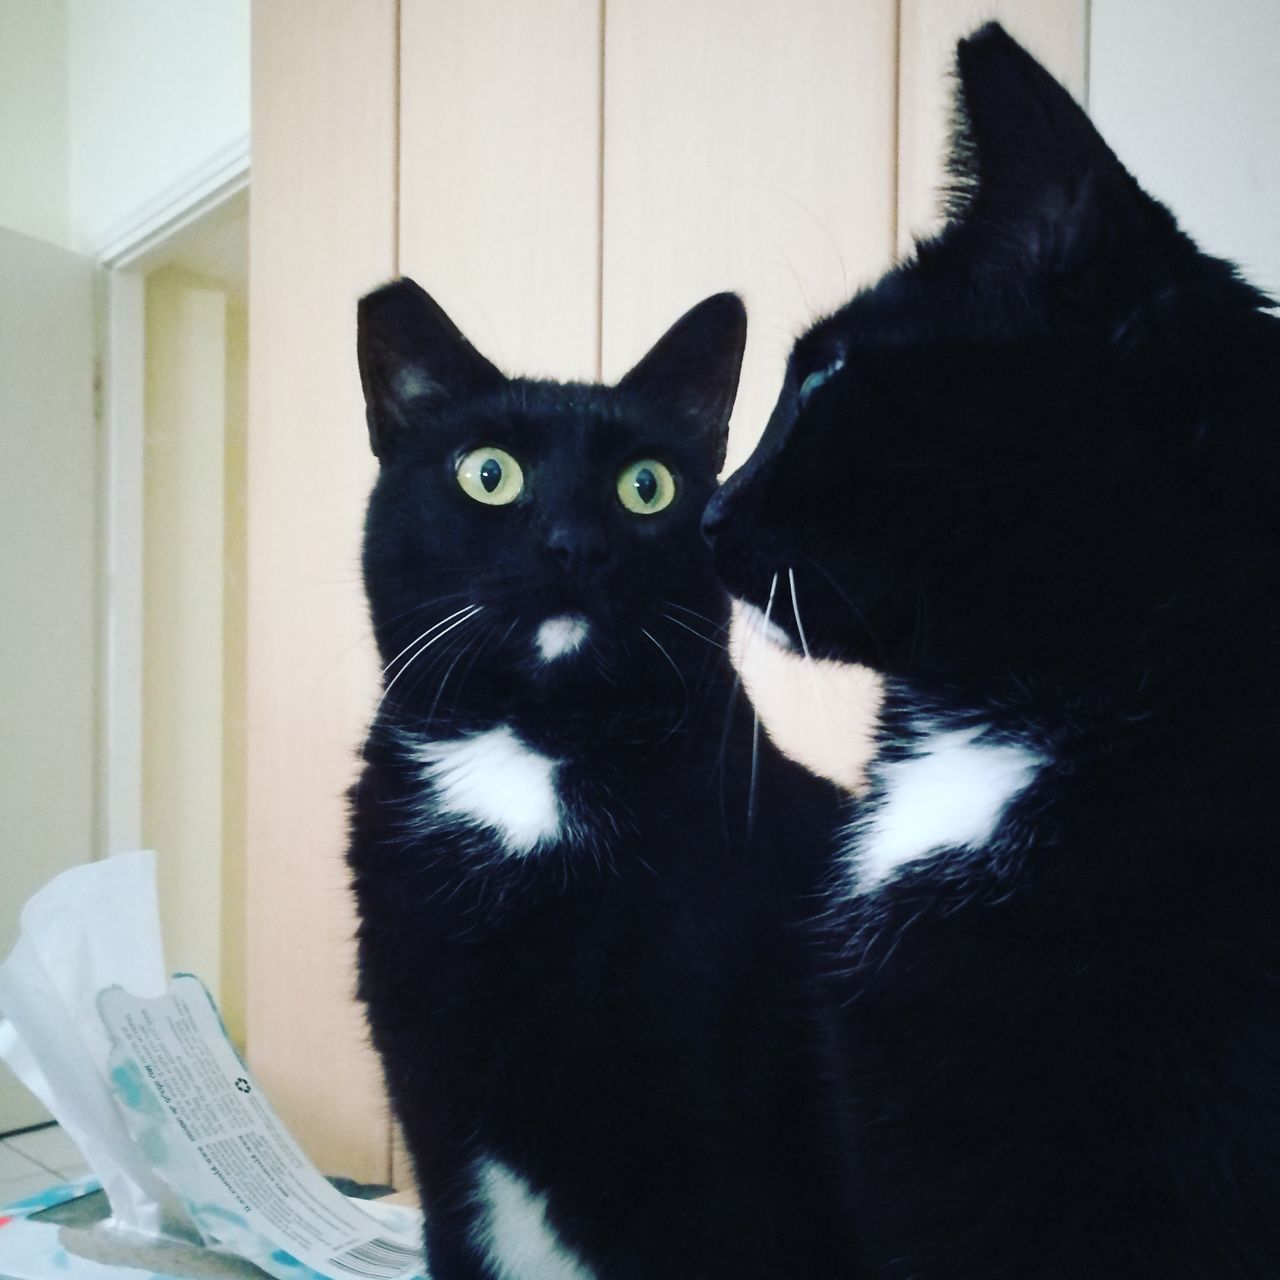 Domestic Cat Blackandwhite Pets Looking At Camera Domestic Animals Indoors  Feline Portrait Yellow Eyes Sitting Close-up Mirror Image Double Trouble